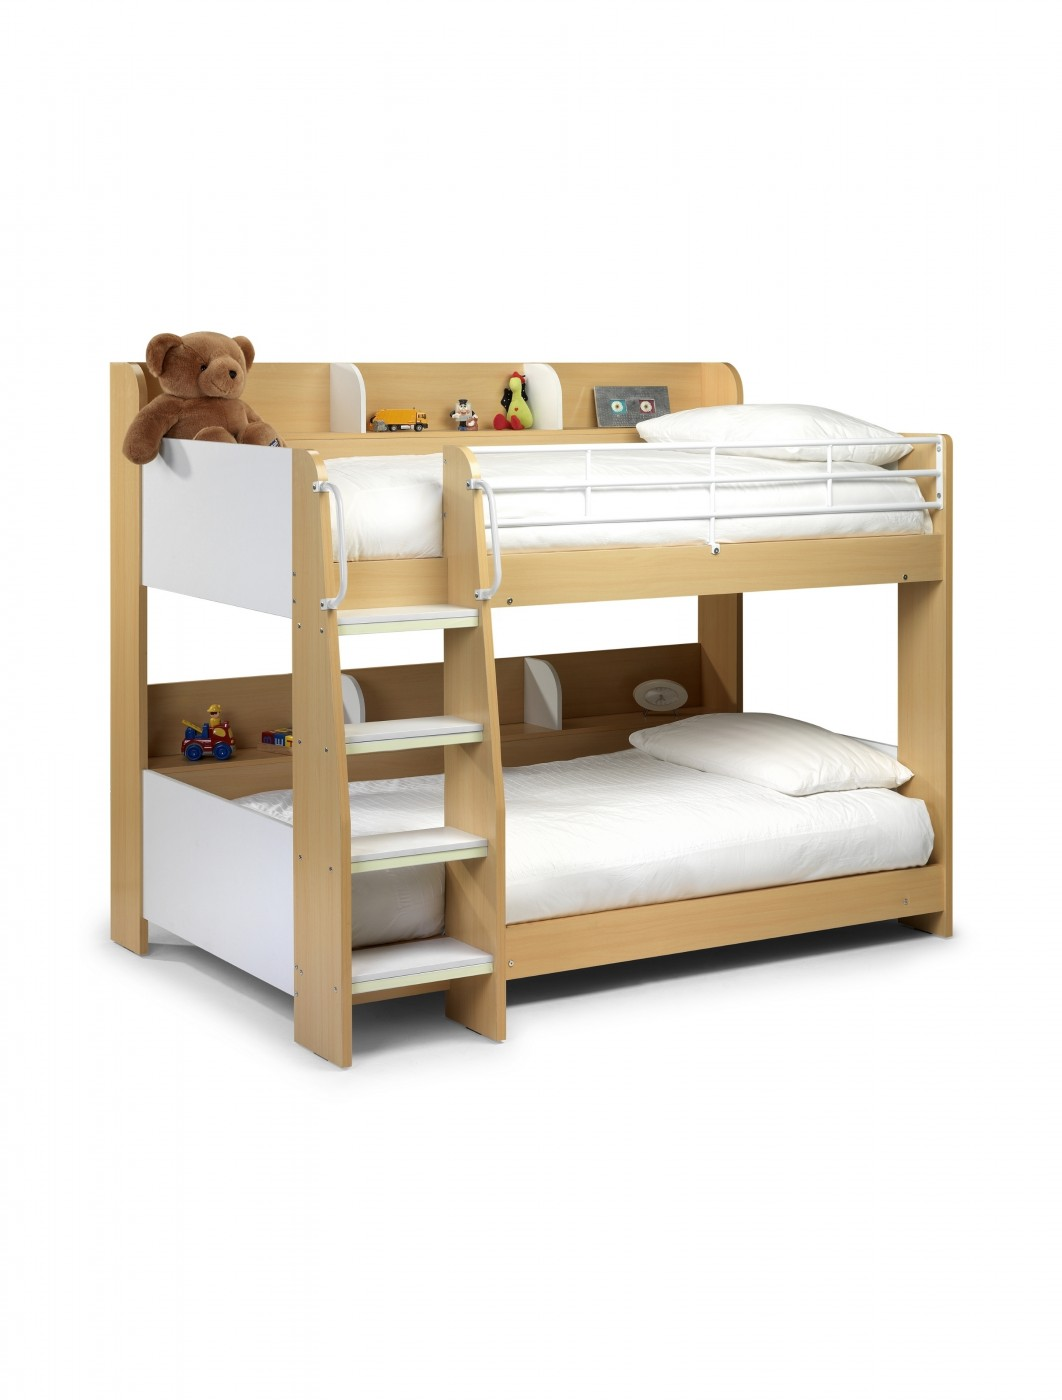 Domino Bunk Bed Dom001 121 Office Furniture